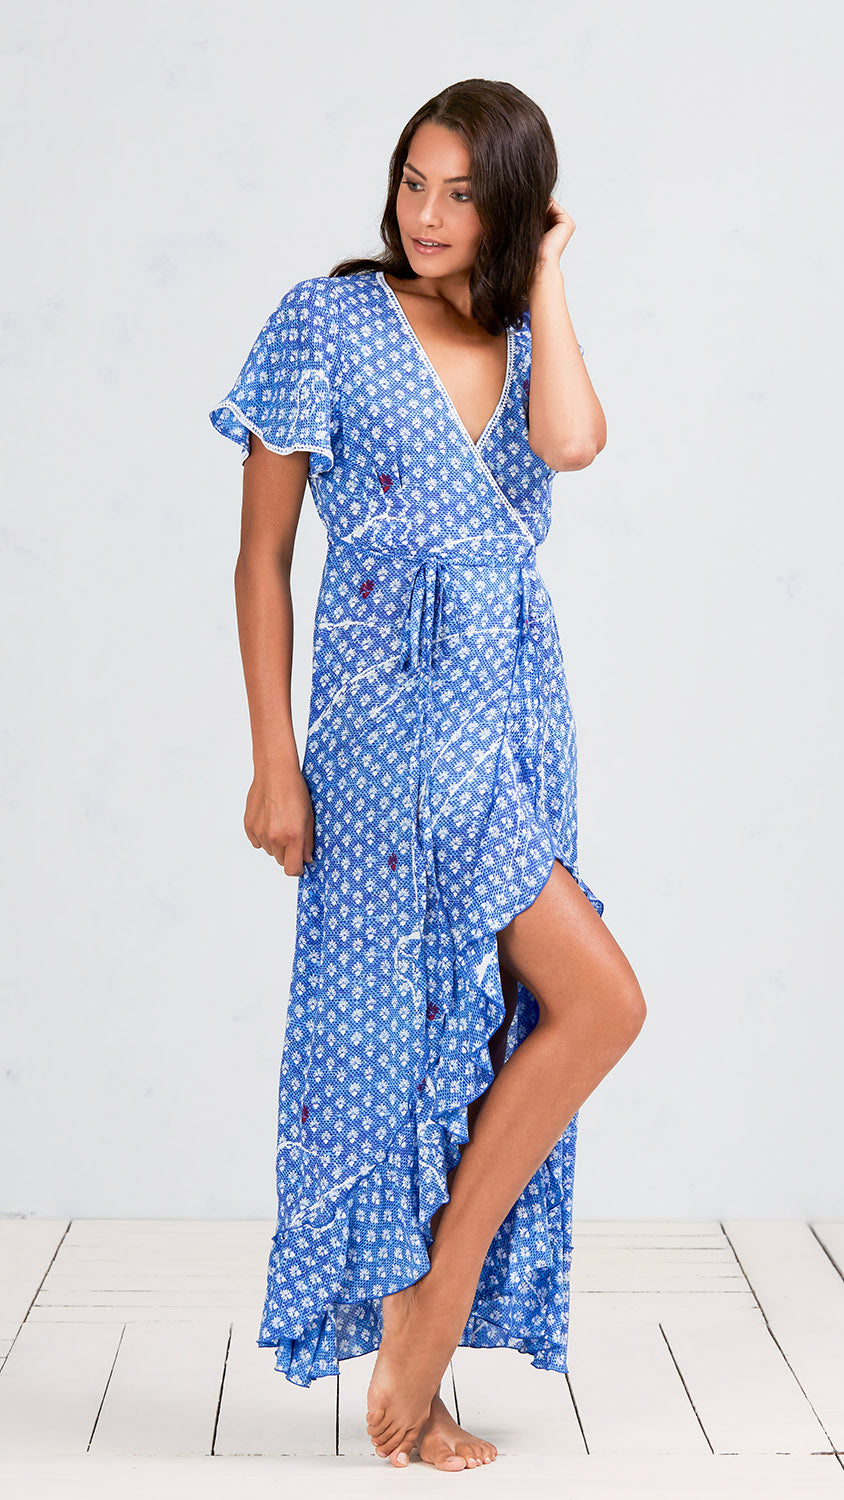 Joe printed wrap dress Poupette St Barth 4Opyriz